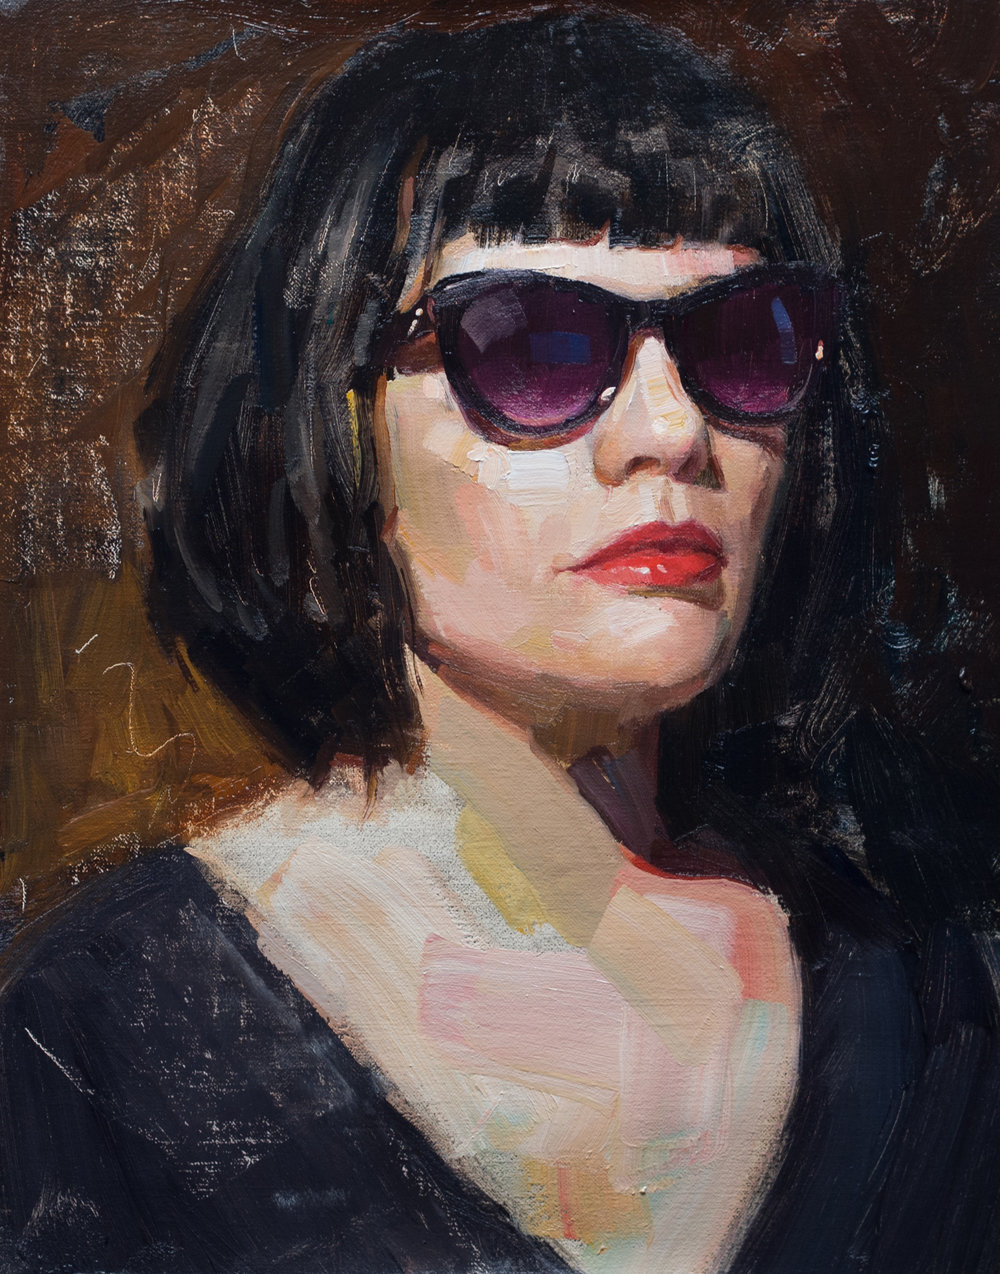 Rock Star  - Rock Star 12x9 inches oil on linen panelTalbert's piece, entitled Rock Star, is a portrait of a close friend. Expressed in an intense chiaroscuro with lots of shrouded color, her eyes hide behind dark sunglasses in order to create emotional tension, encouraging the viewer to try to discern her gaze and gauge her seemingly distant disposition which is contradicted by the gentle curve of her alluring lips.